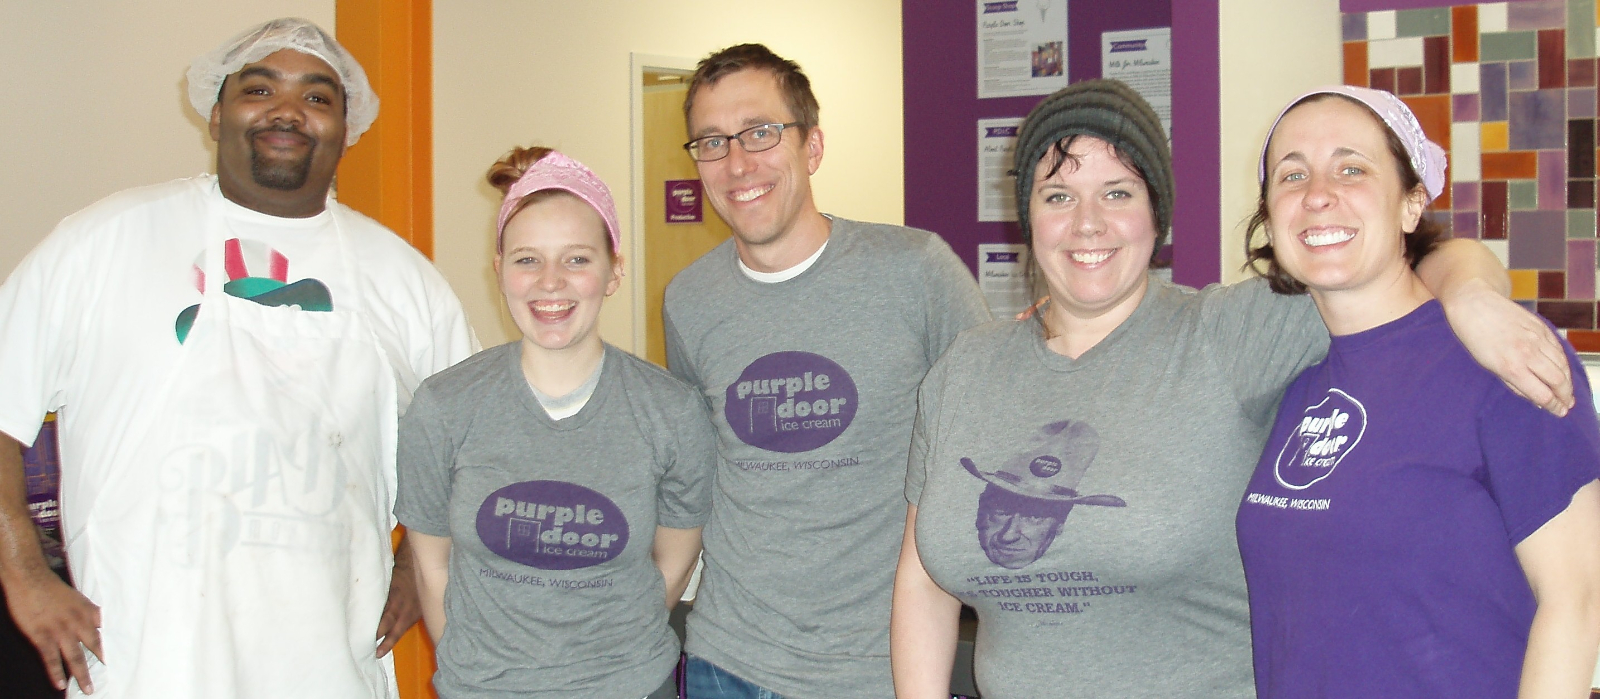 Steve (center) and Lauren Schultz (far right) have a great working relationship with their staff members.